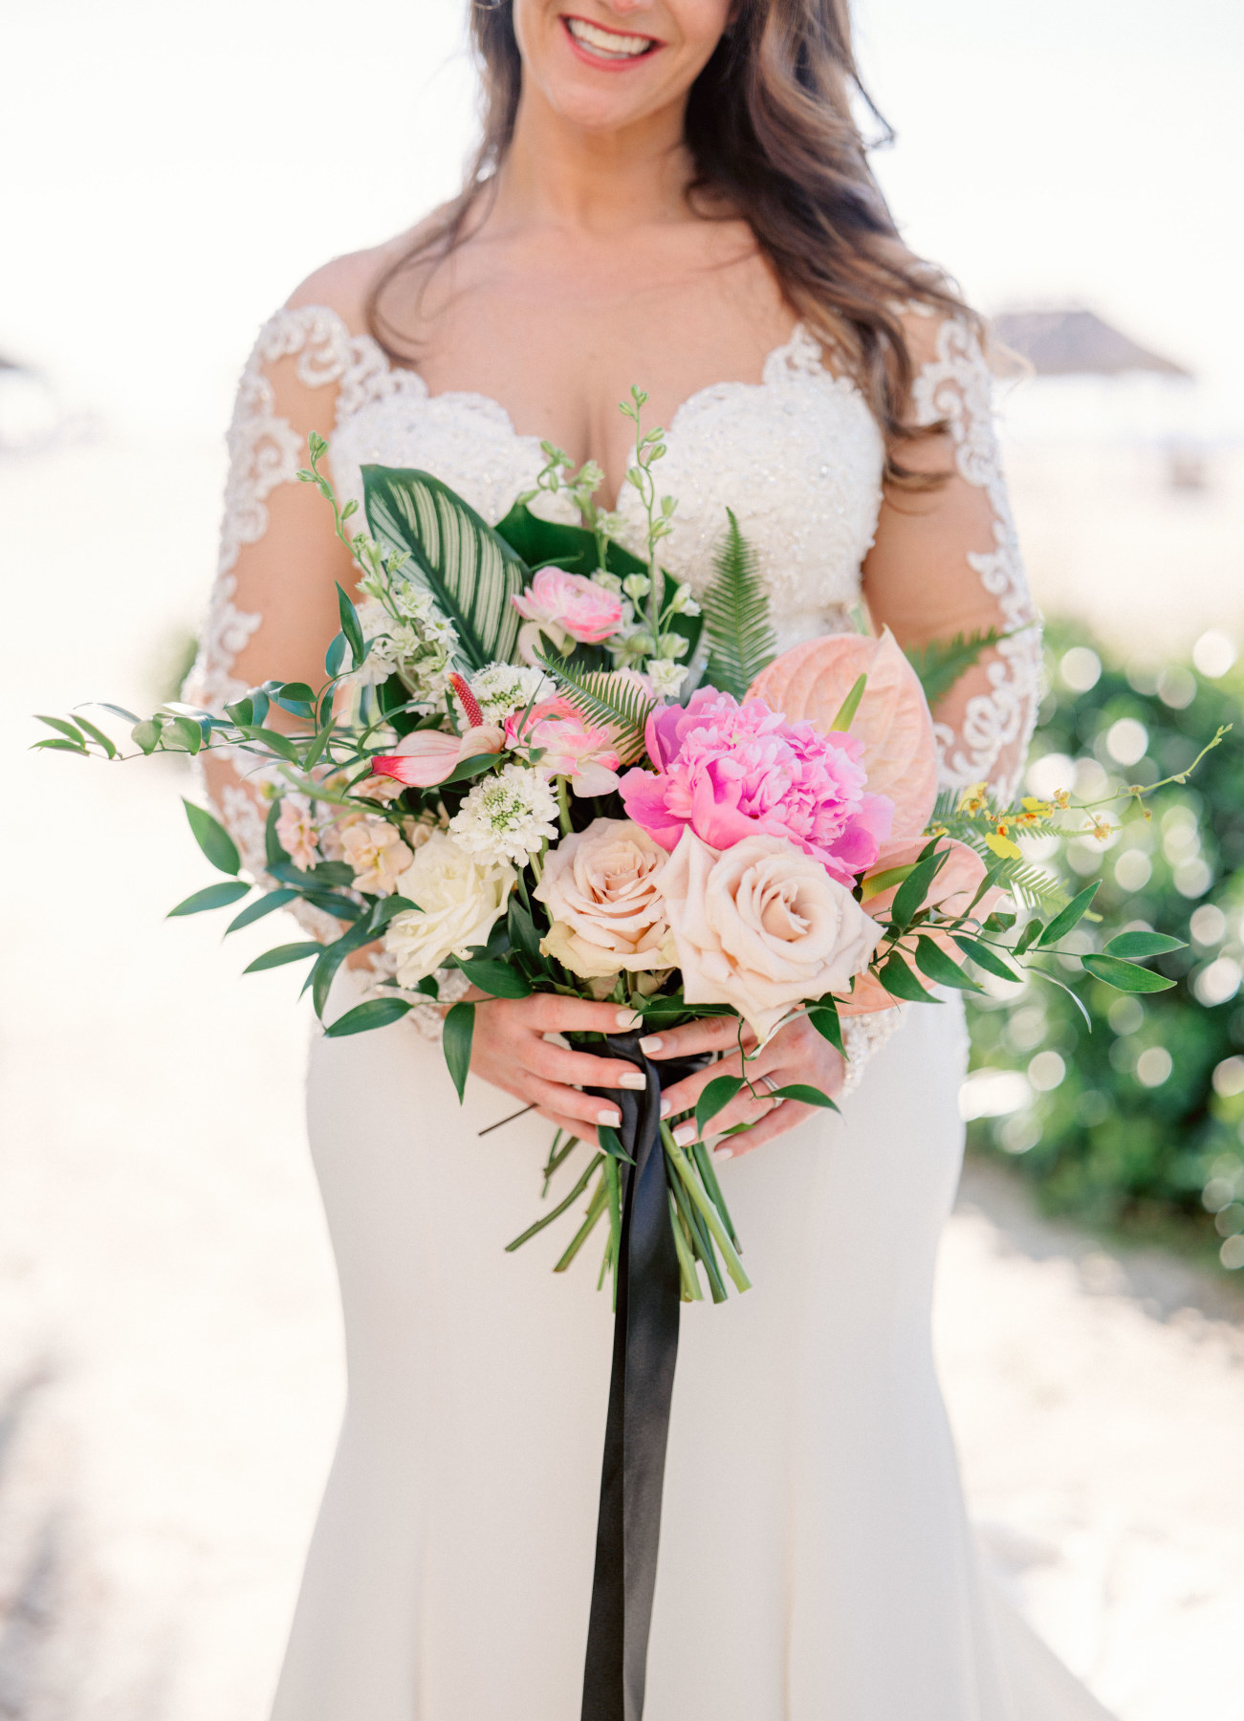 bride's bouquet with pink, cream, and yellow peonies, anthurium, scabiosa, ranunculus, and orchids